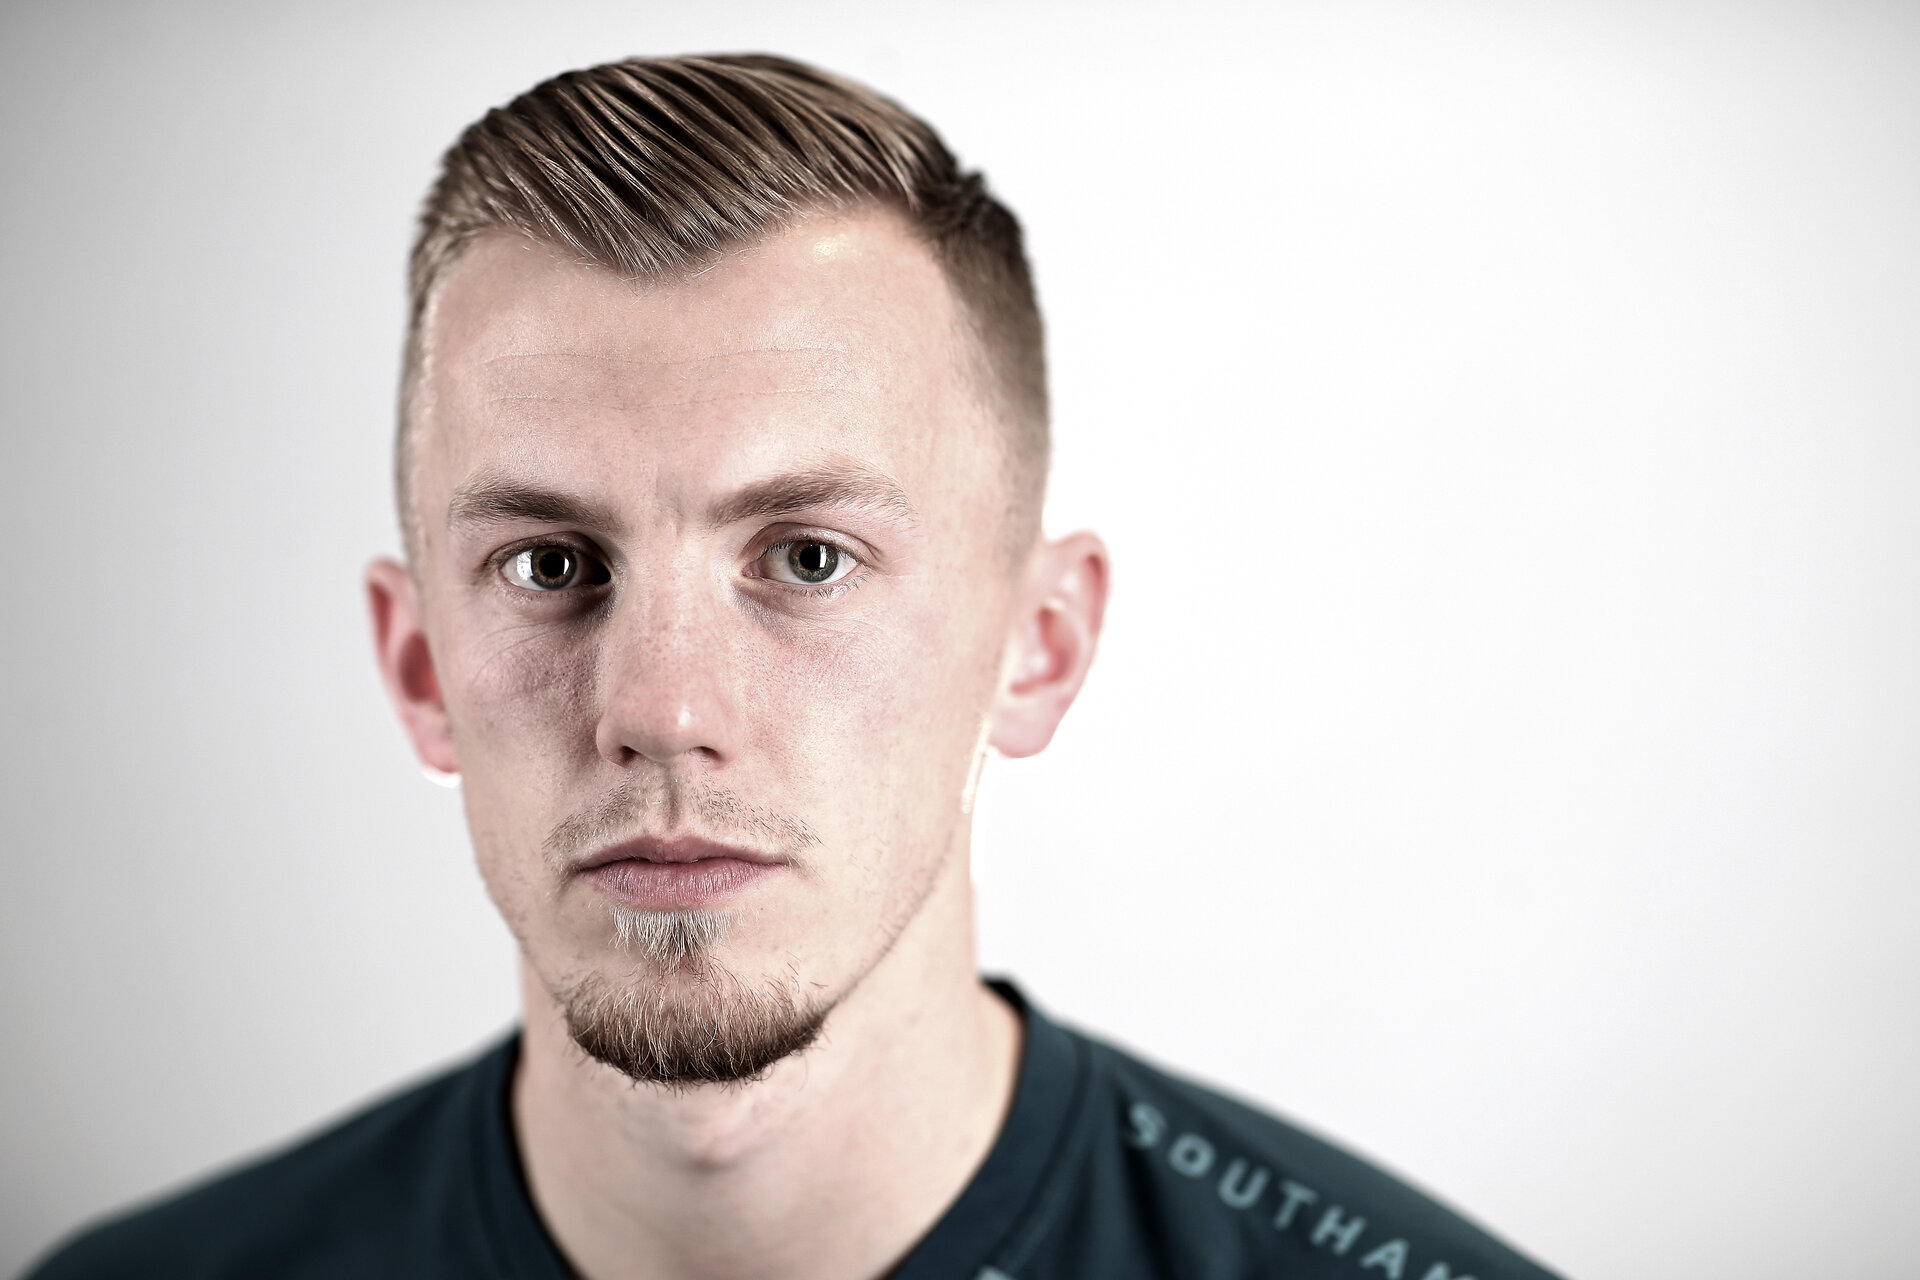 SOUTHAMPTON, ENGLAND - DECEMBER 09: James Ward-Prowse pictured for the Saints match day magazine, at the Staplewood Campus on December 12, 2019 in Southampton, England. (Photo by Matt Watson/Southampton FC via Getty Images)